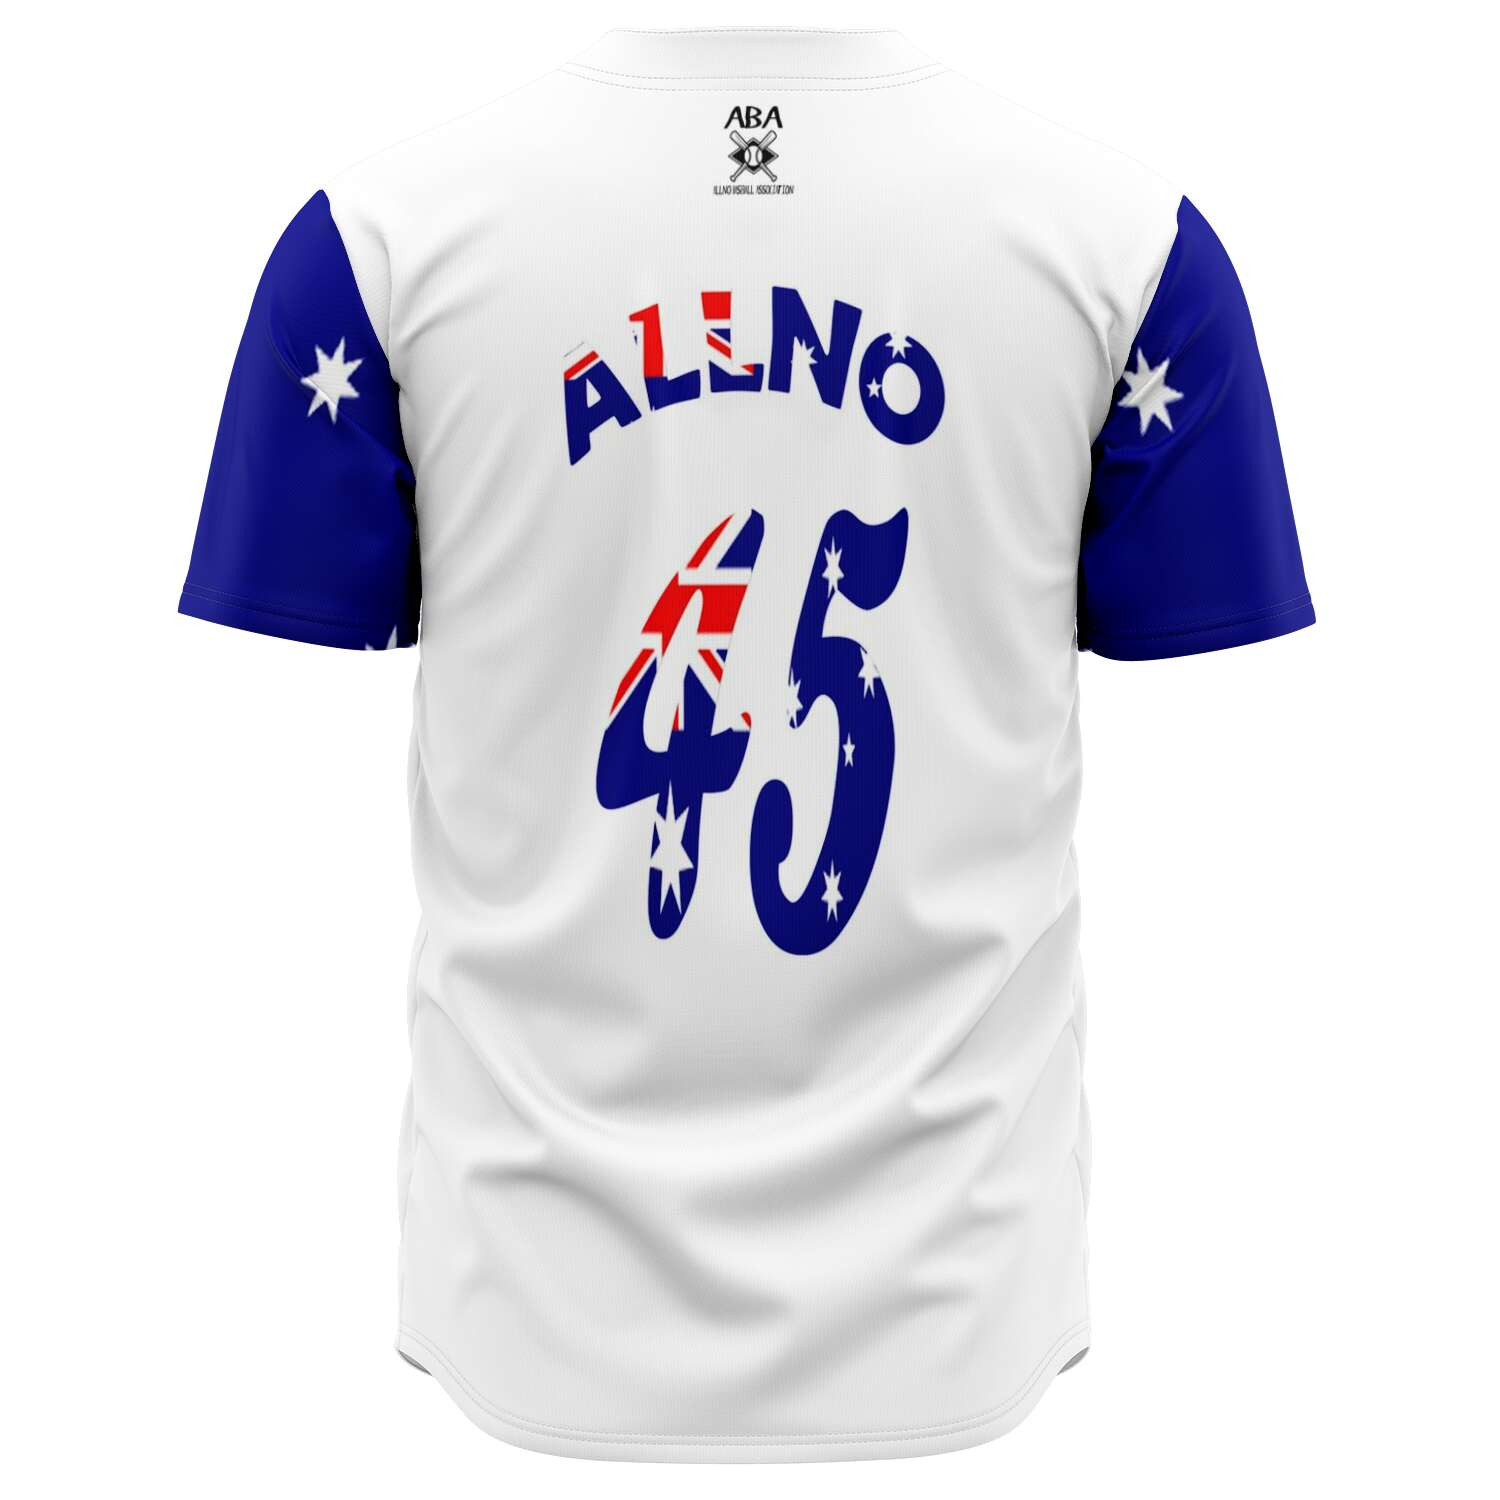 Allno Down Under ATM Baseball Jersey